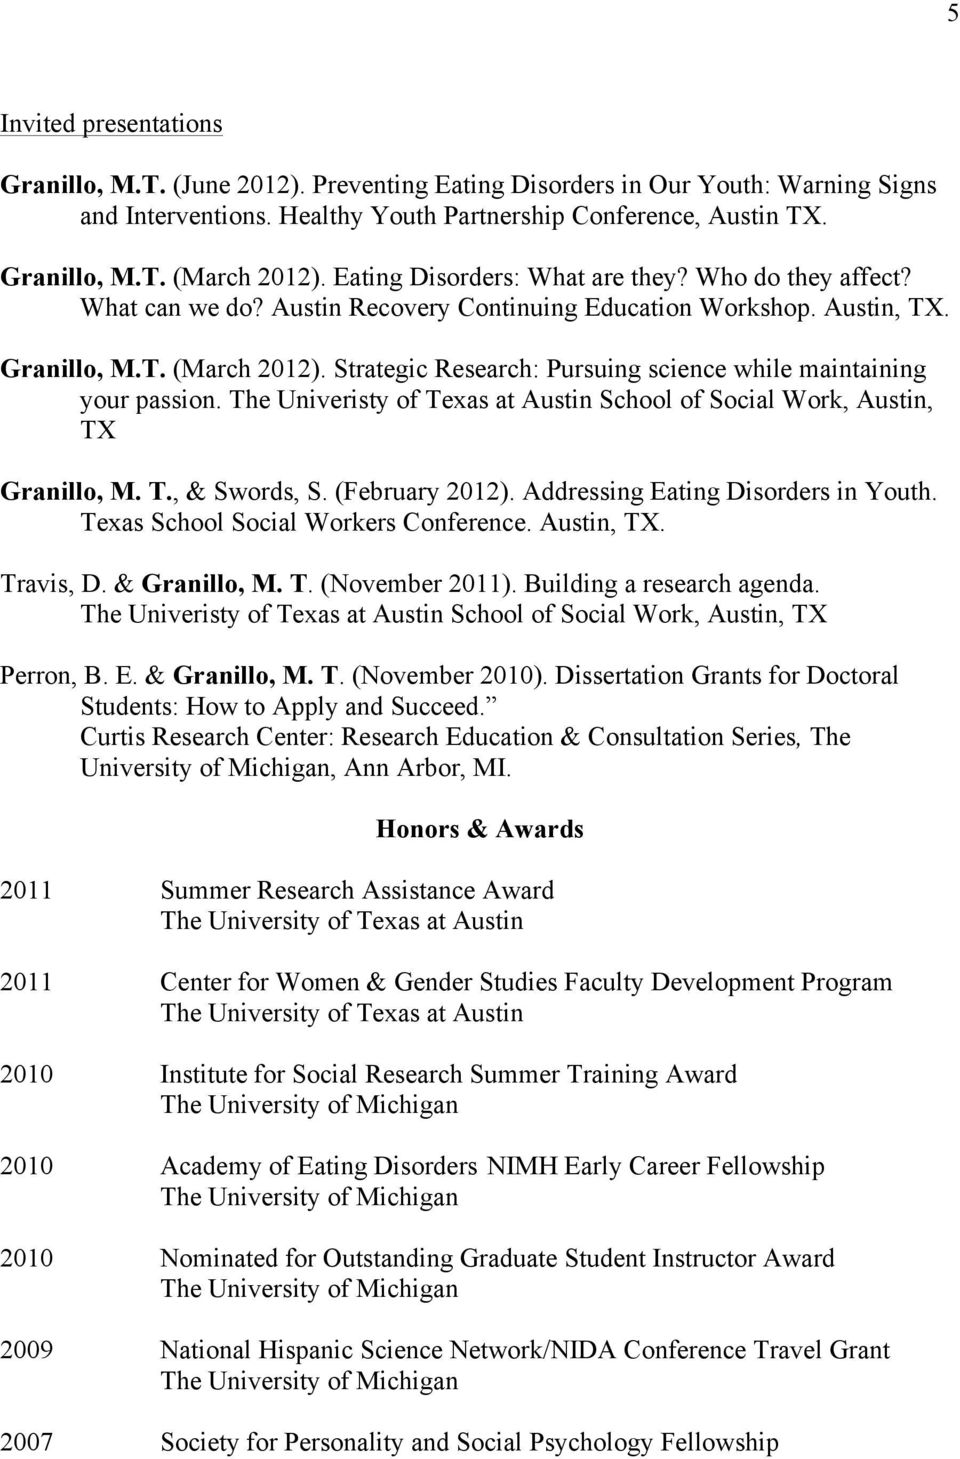 Strategic Research: Pursuing science while maintaining your passion. The Univeristy of Texas at Austin, Austin, TX Granillo, M. T., & Swords, S. (February 2012). Addressing Eating Disorders in Youth.